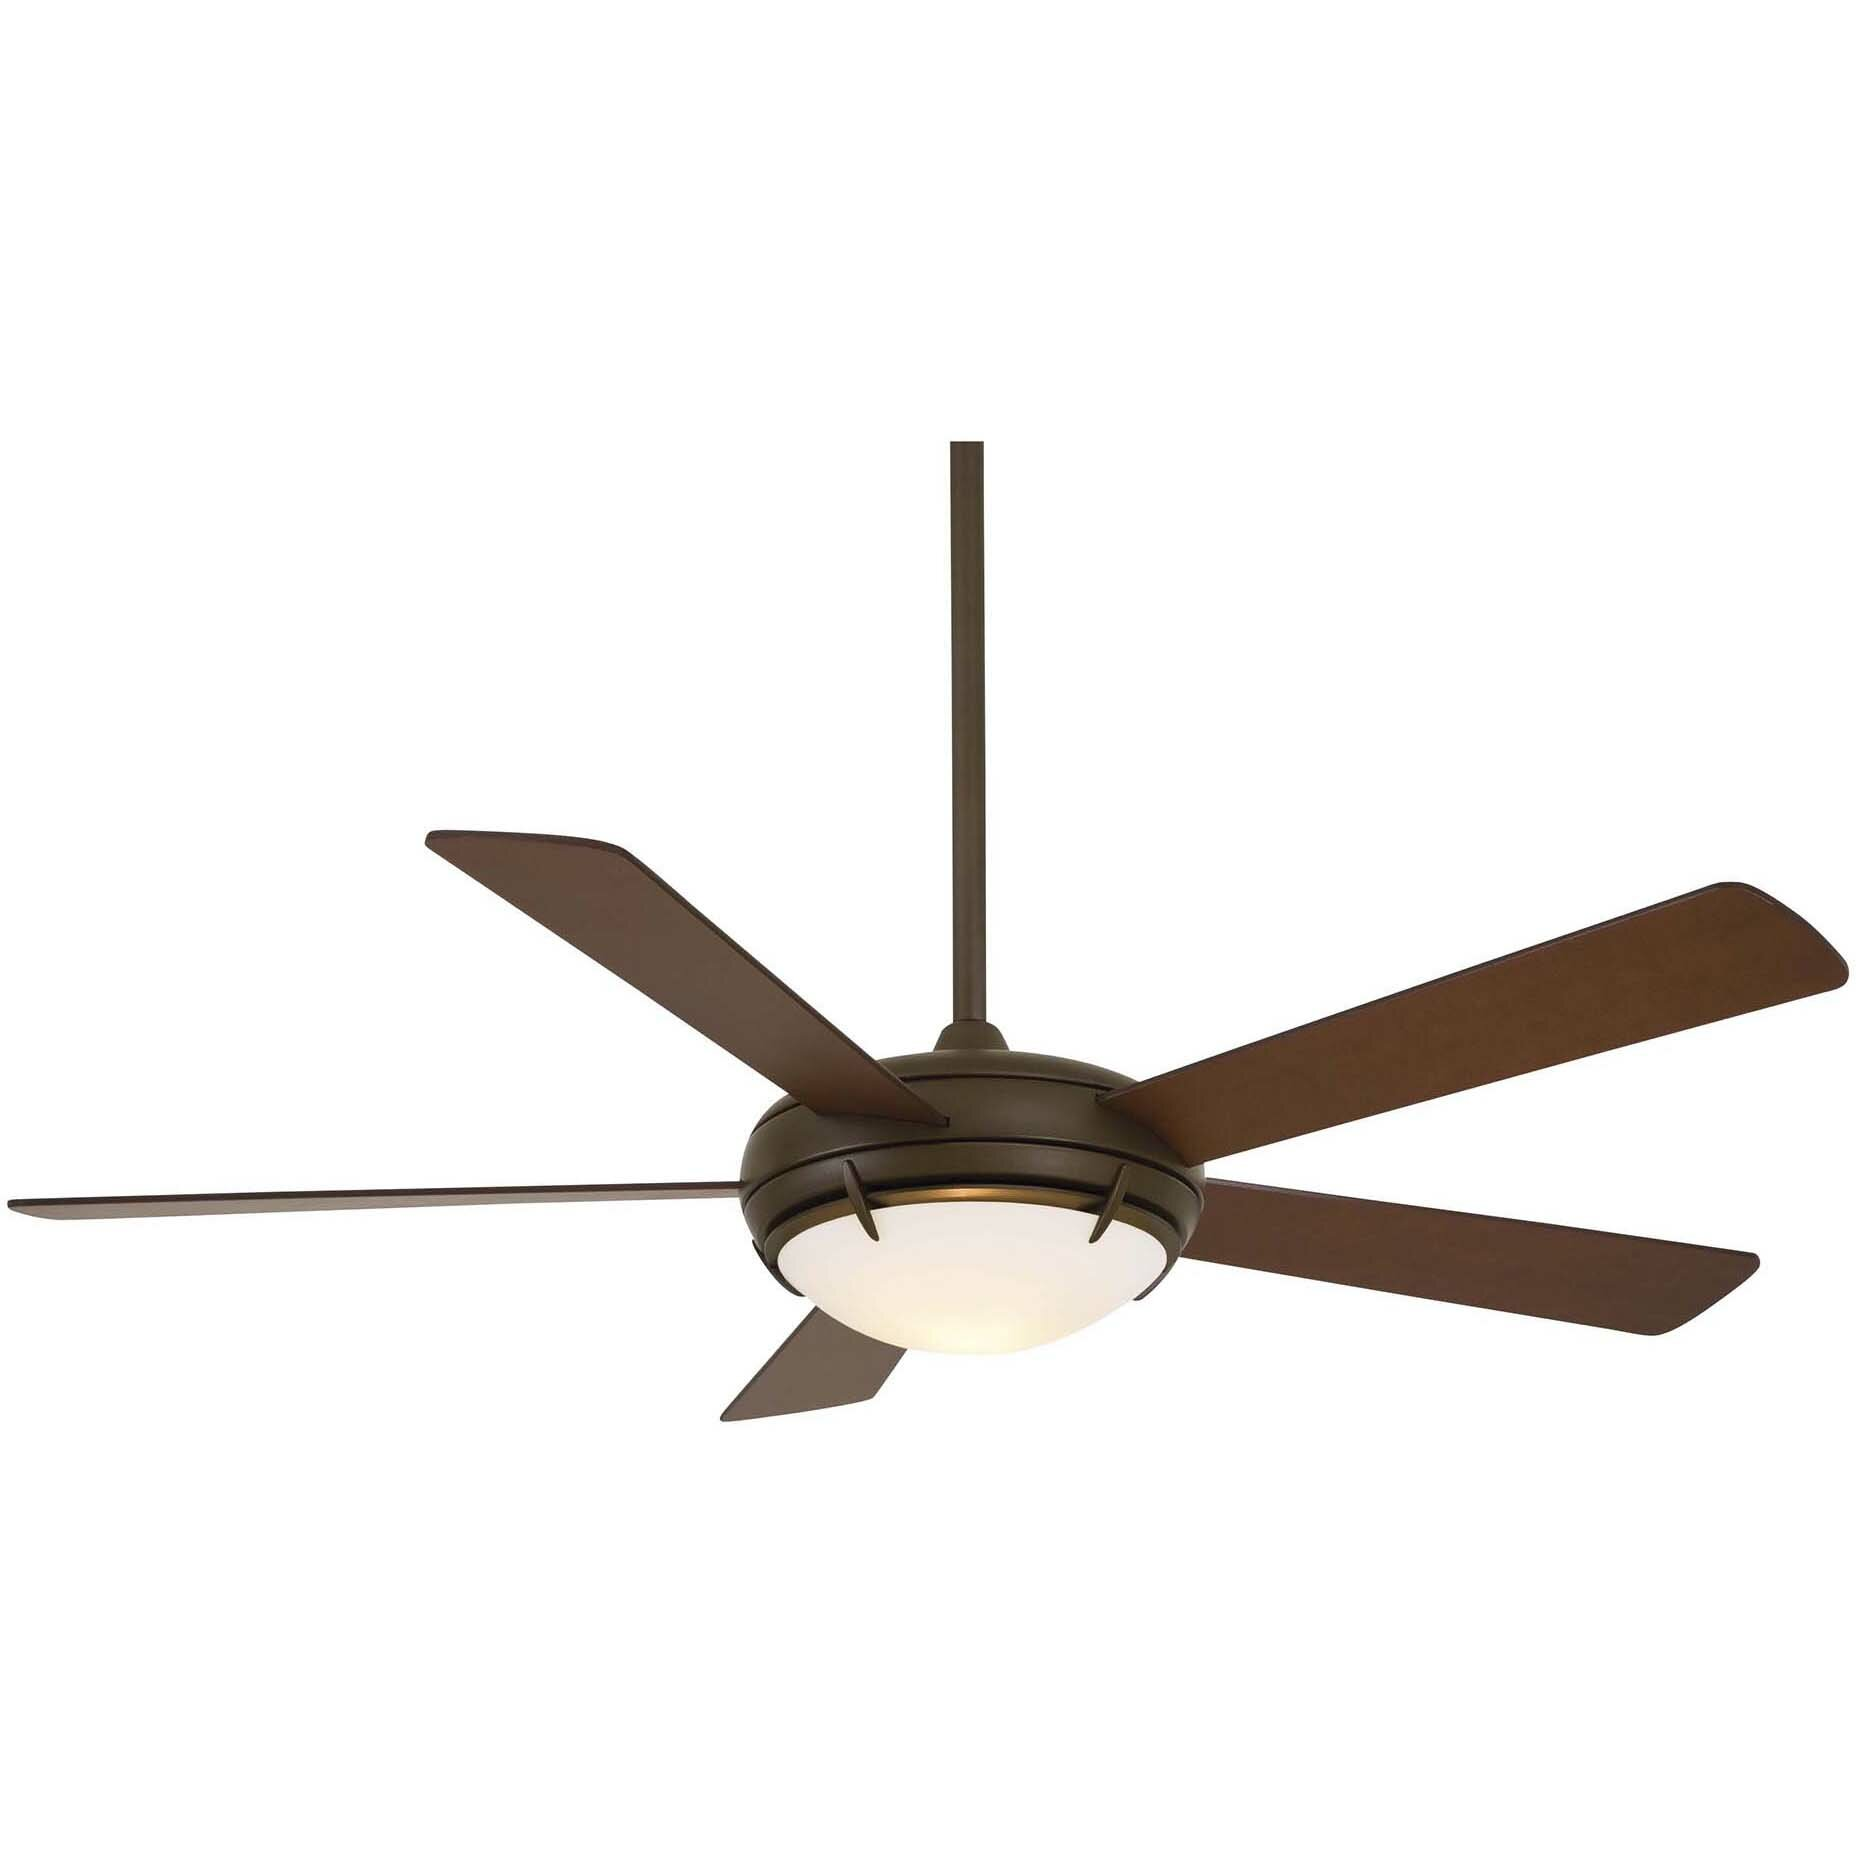 "Minka Aire 54"" o 5 Blade Contemporary LED Ceiling Fan & Reviews"